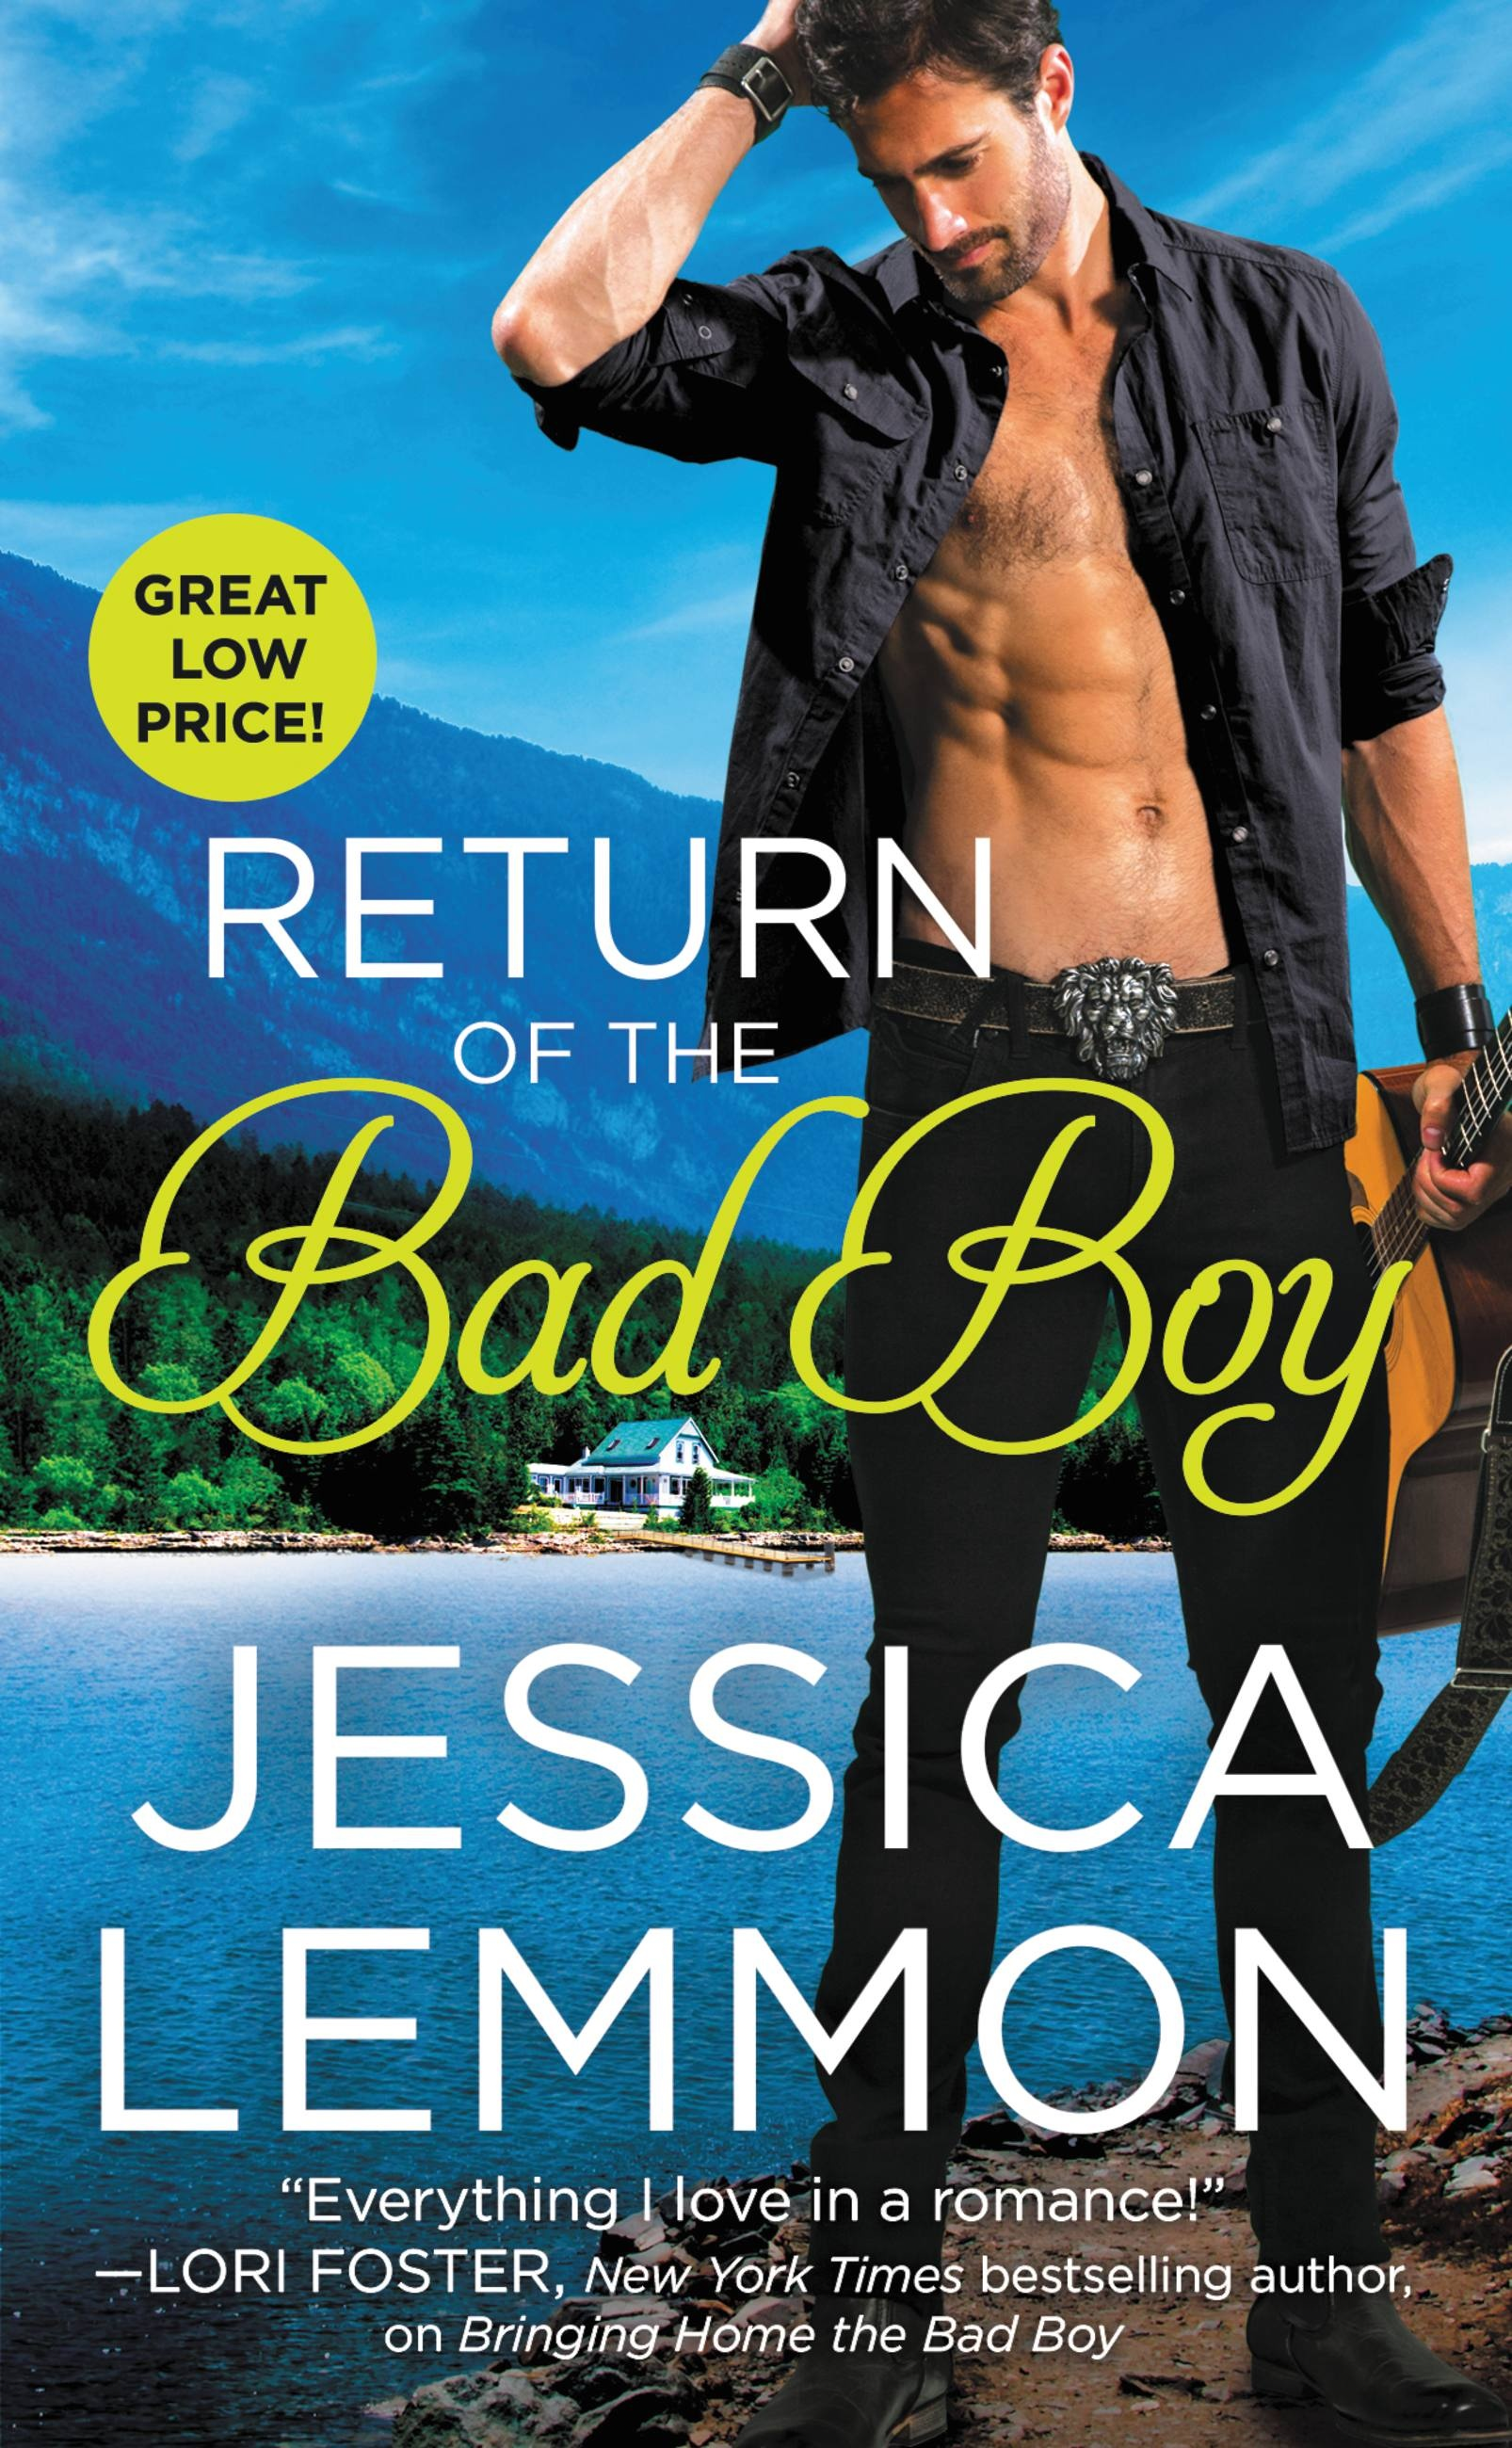 Return of the Bad Boy by Jessica Lemmon | Hachette Book Group